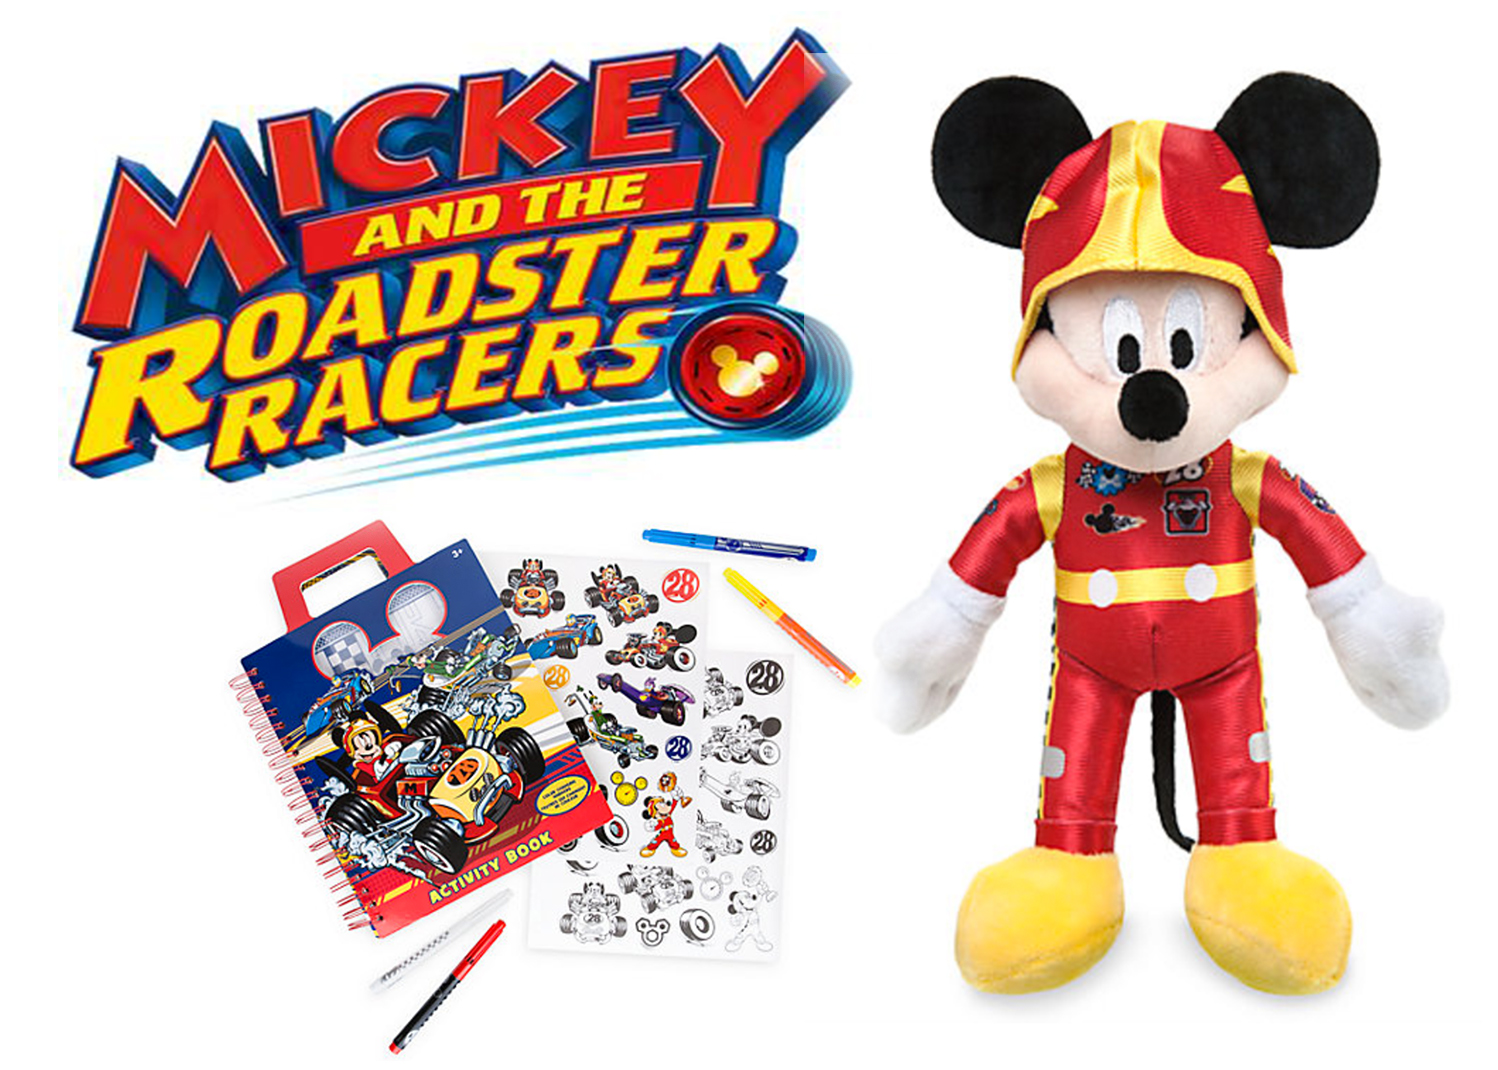 DISNEY'S MICKEY AND THE ROADSTER RACERS GIVEAWAY